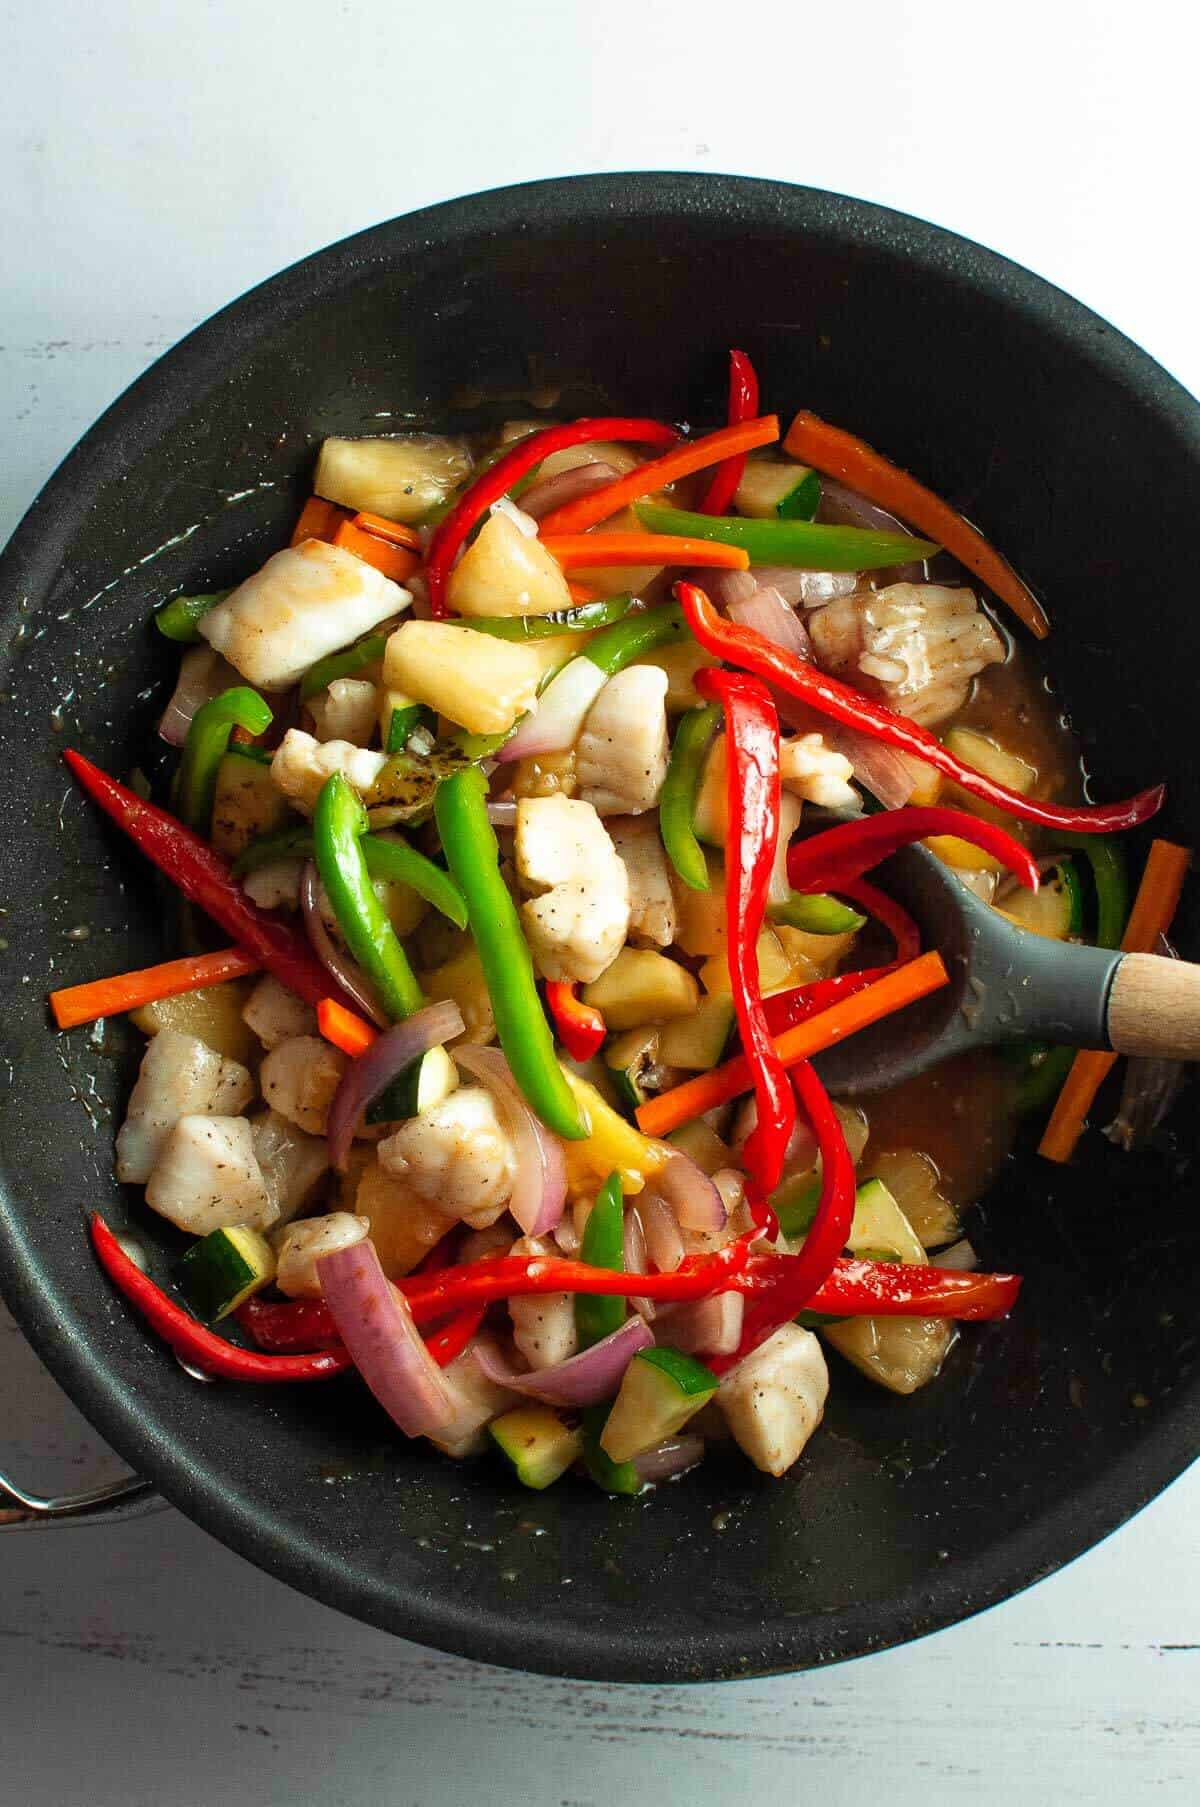 sweet and sour fish in the wok with vegetables